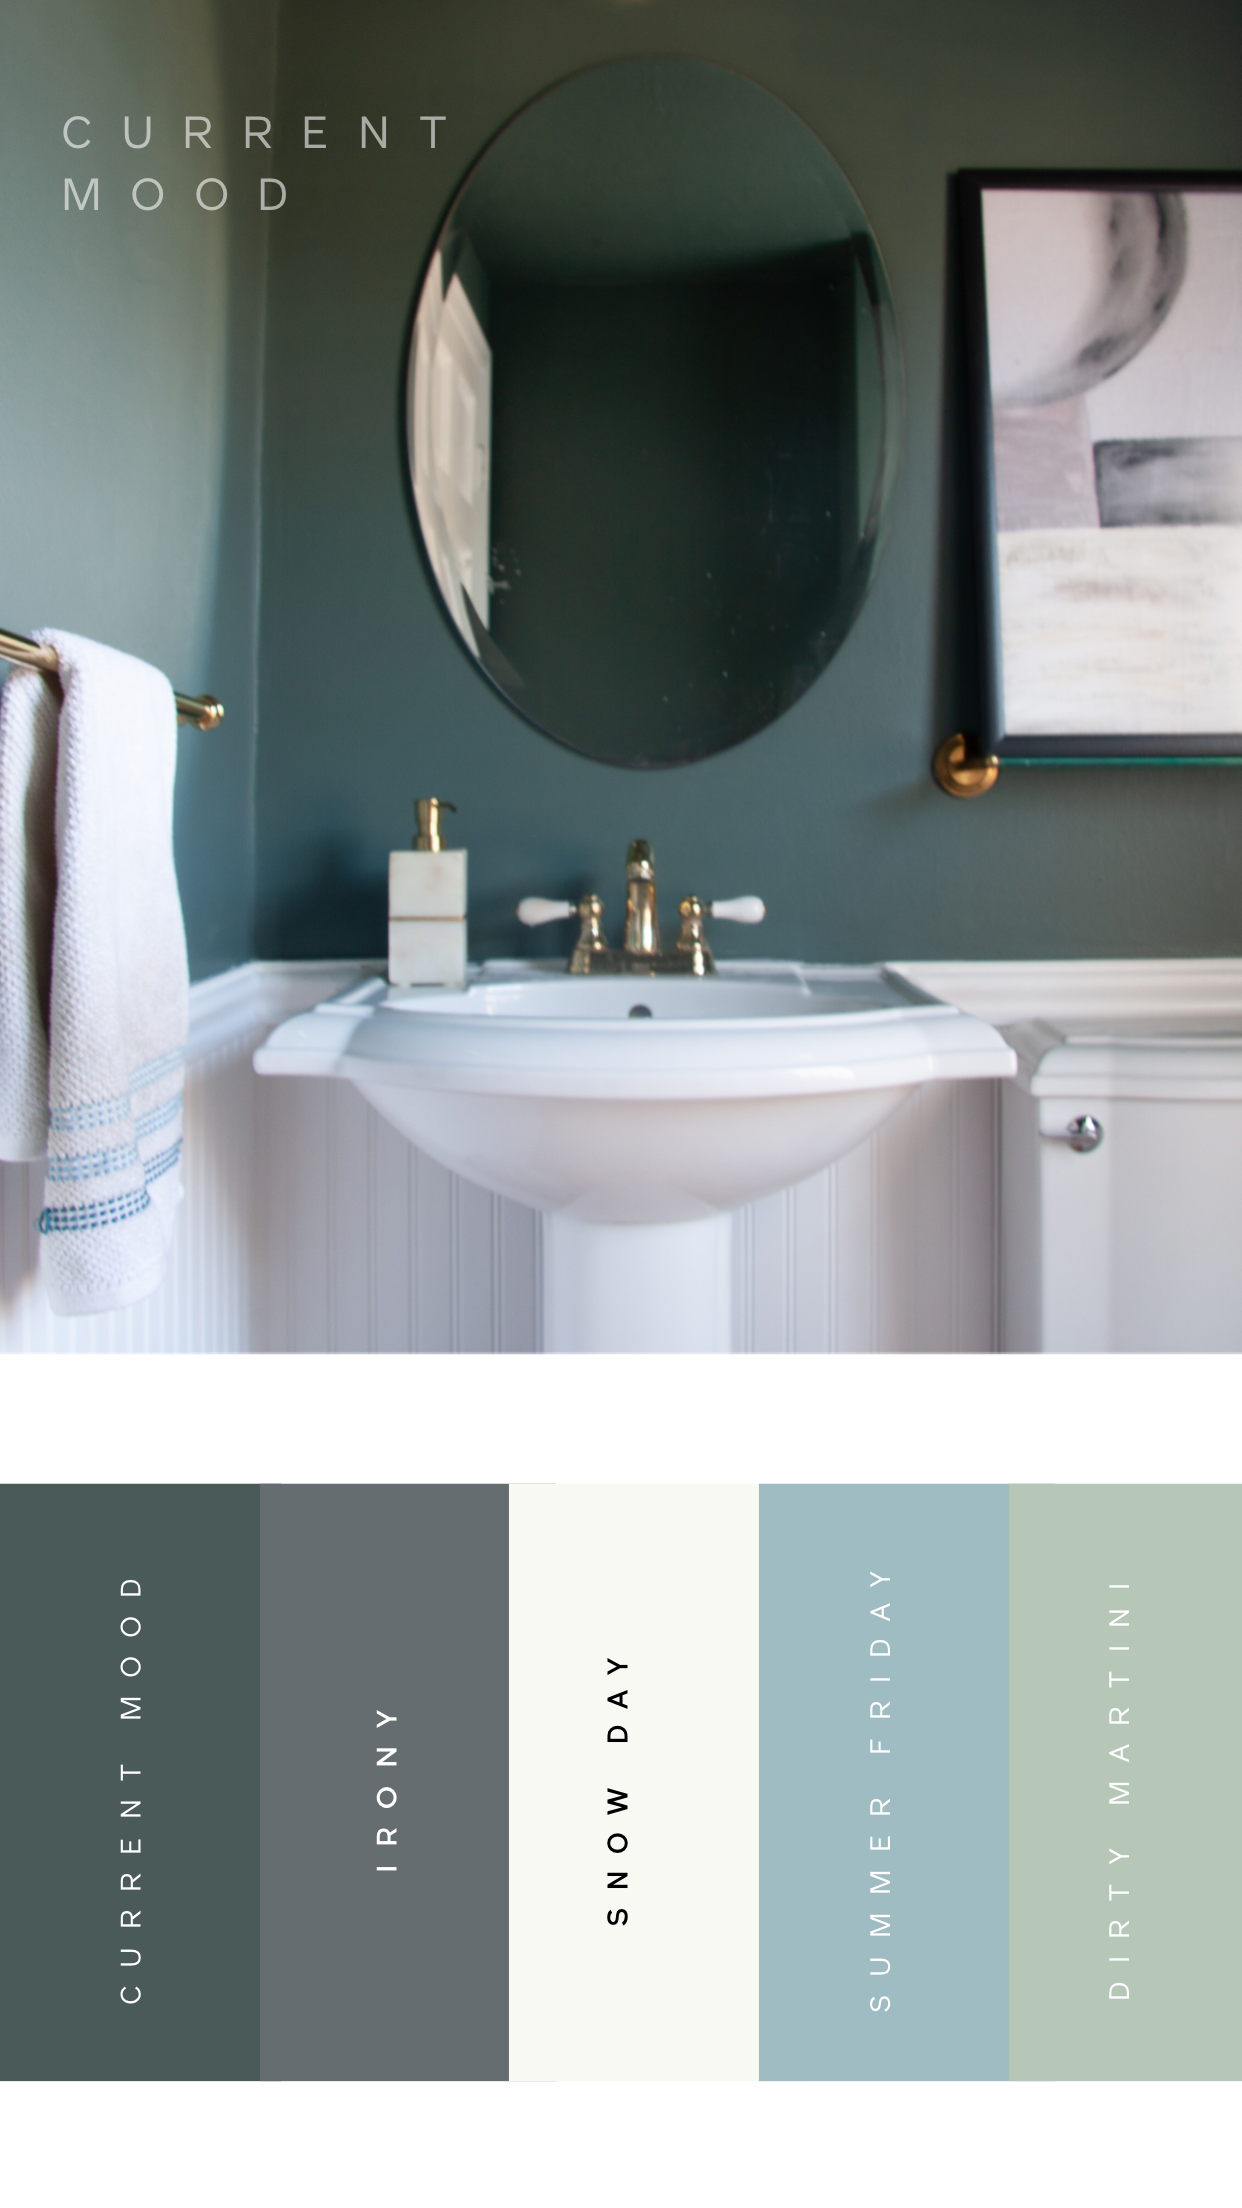 Paint Colors Paint Colors Bedroom Paint Colors For Bathrooms Green Paint Colors Bold Pa Bathroom Wall Colors Small Bathroom Paint Bathroom Paint Colors